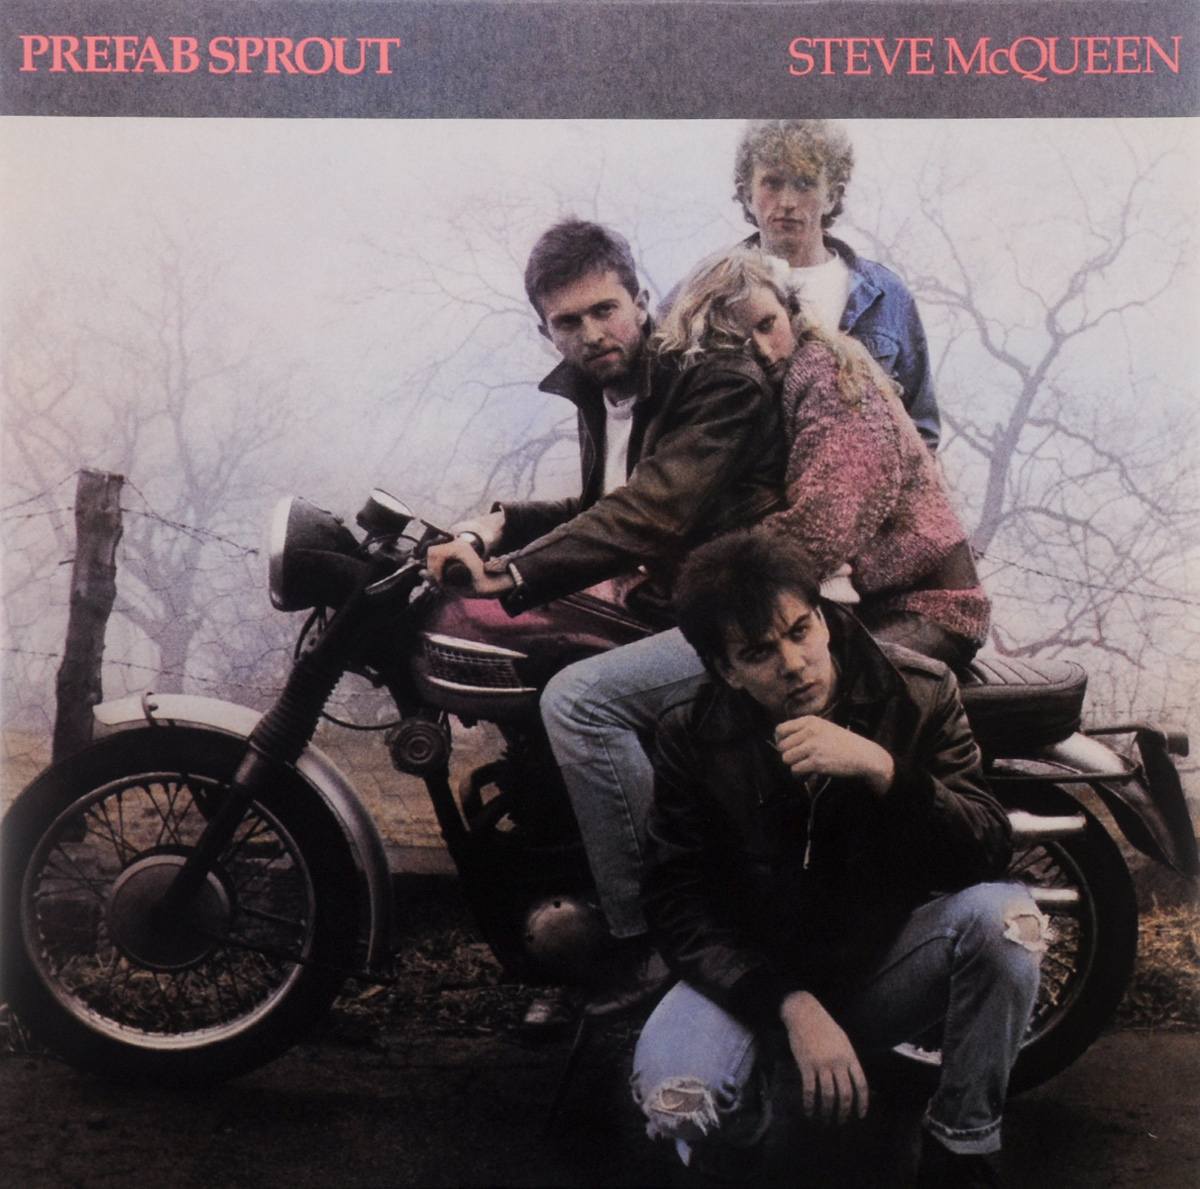 Prefab Sprout Prefab Sprout. Steve McQueen sprout sprout 5505 mpwt